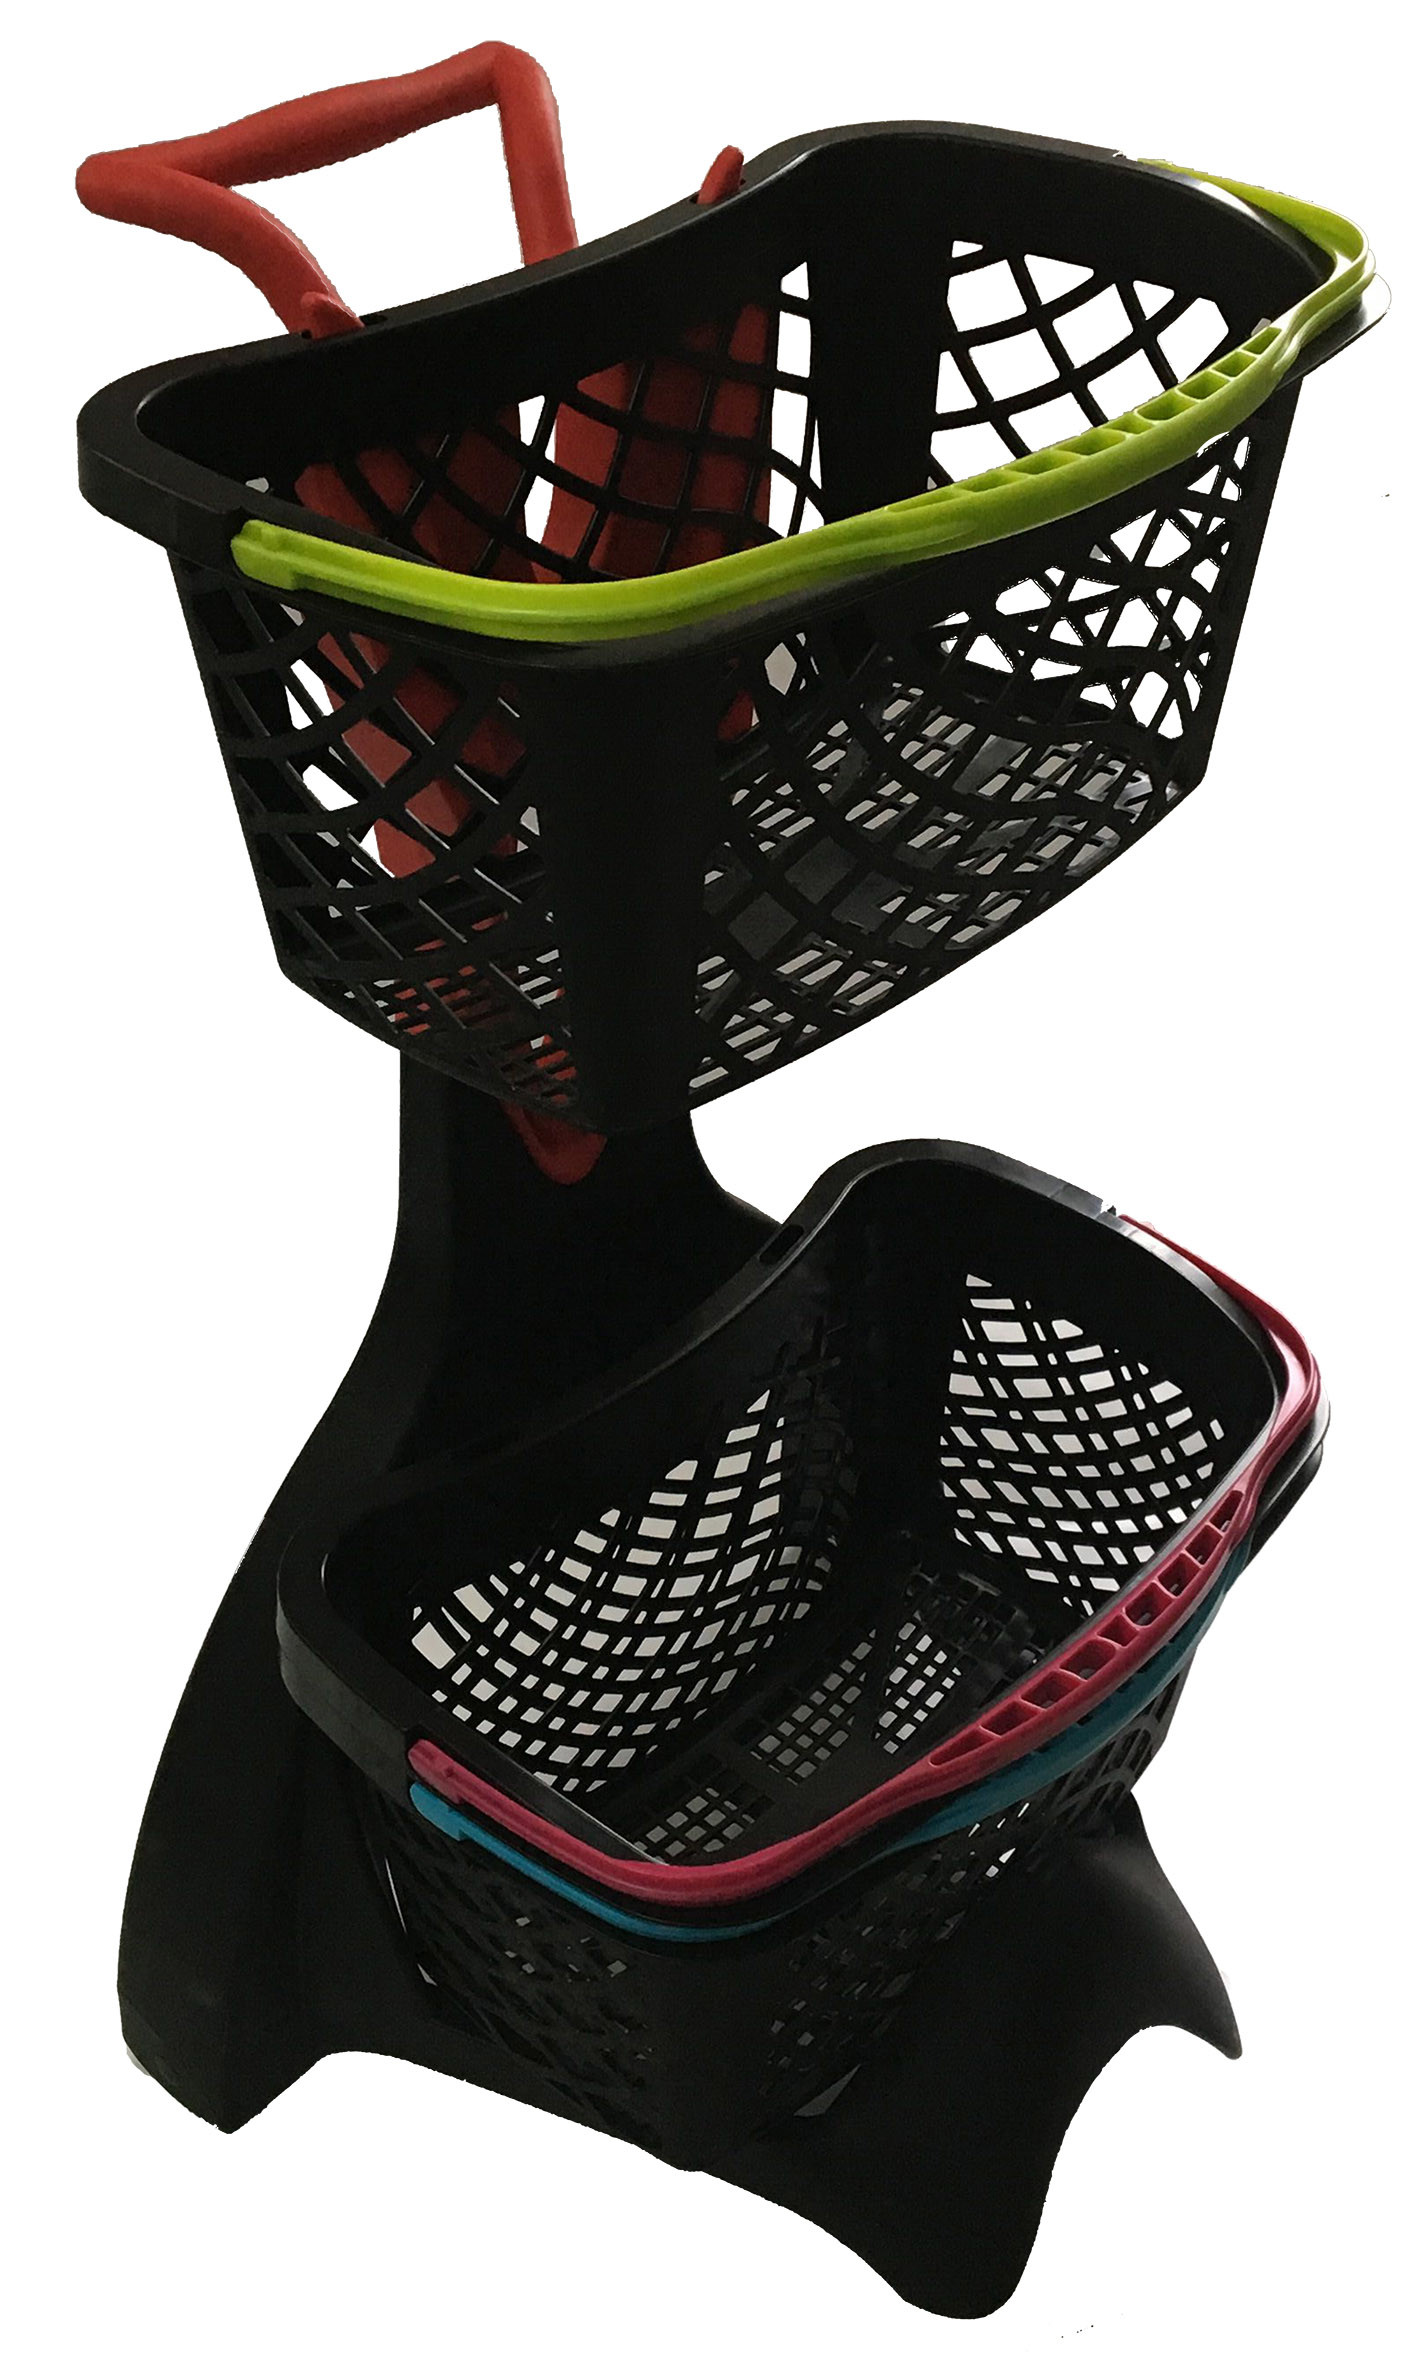 580x480x980 Plastic Shopping Basket Trolley With 3 Inch TAPE Wheel